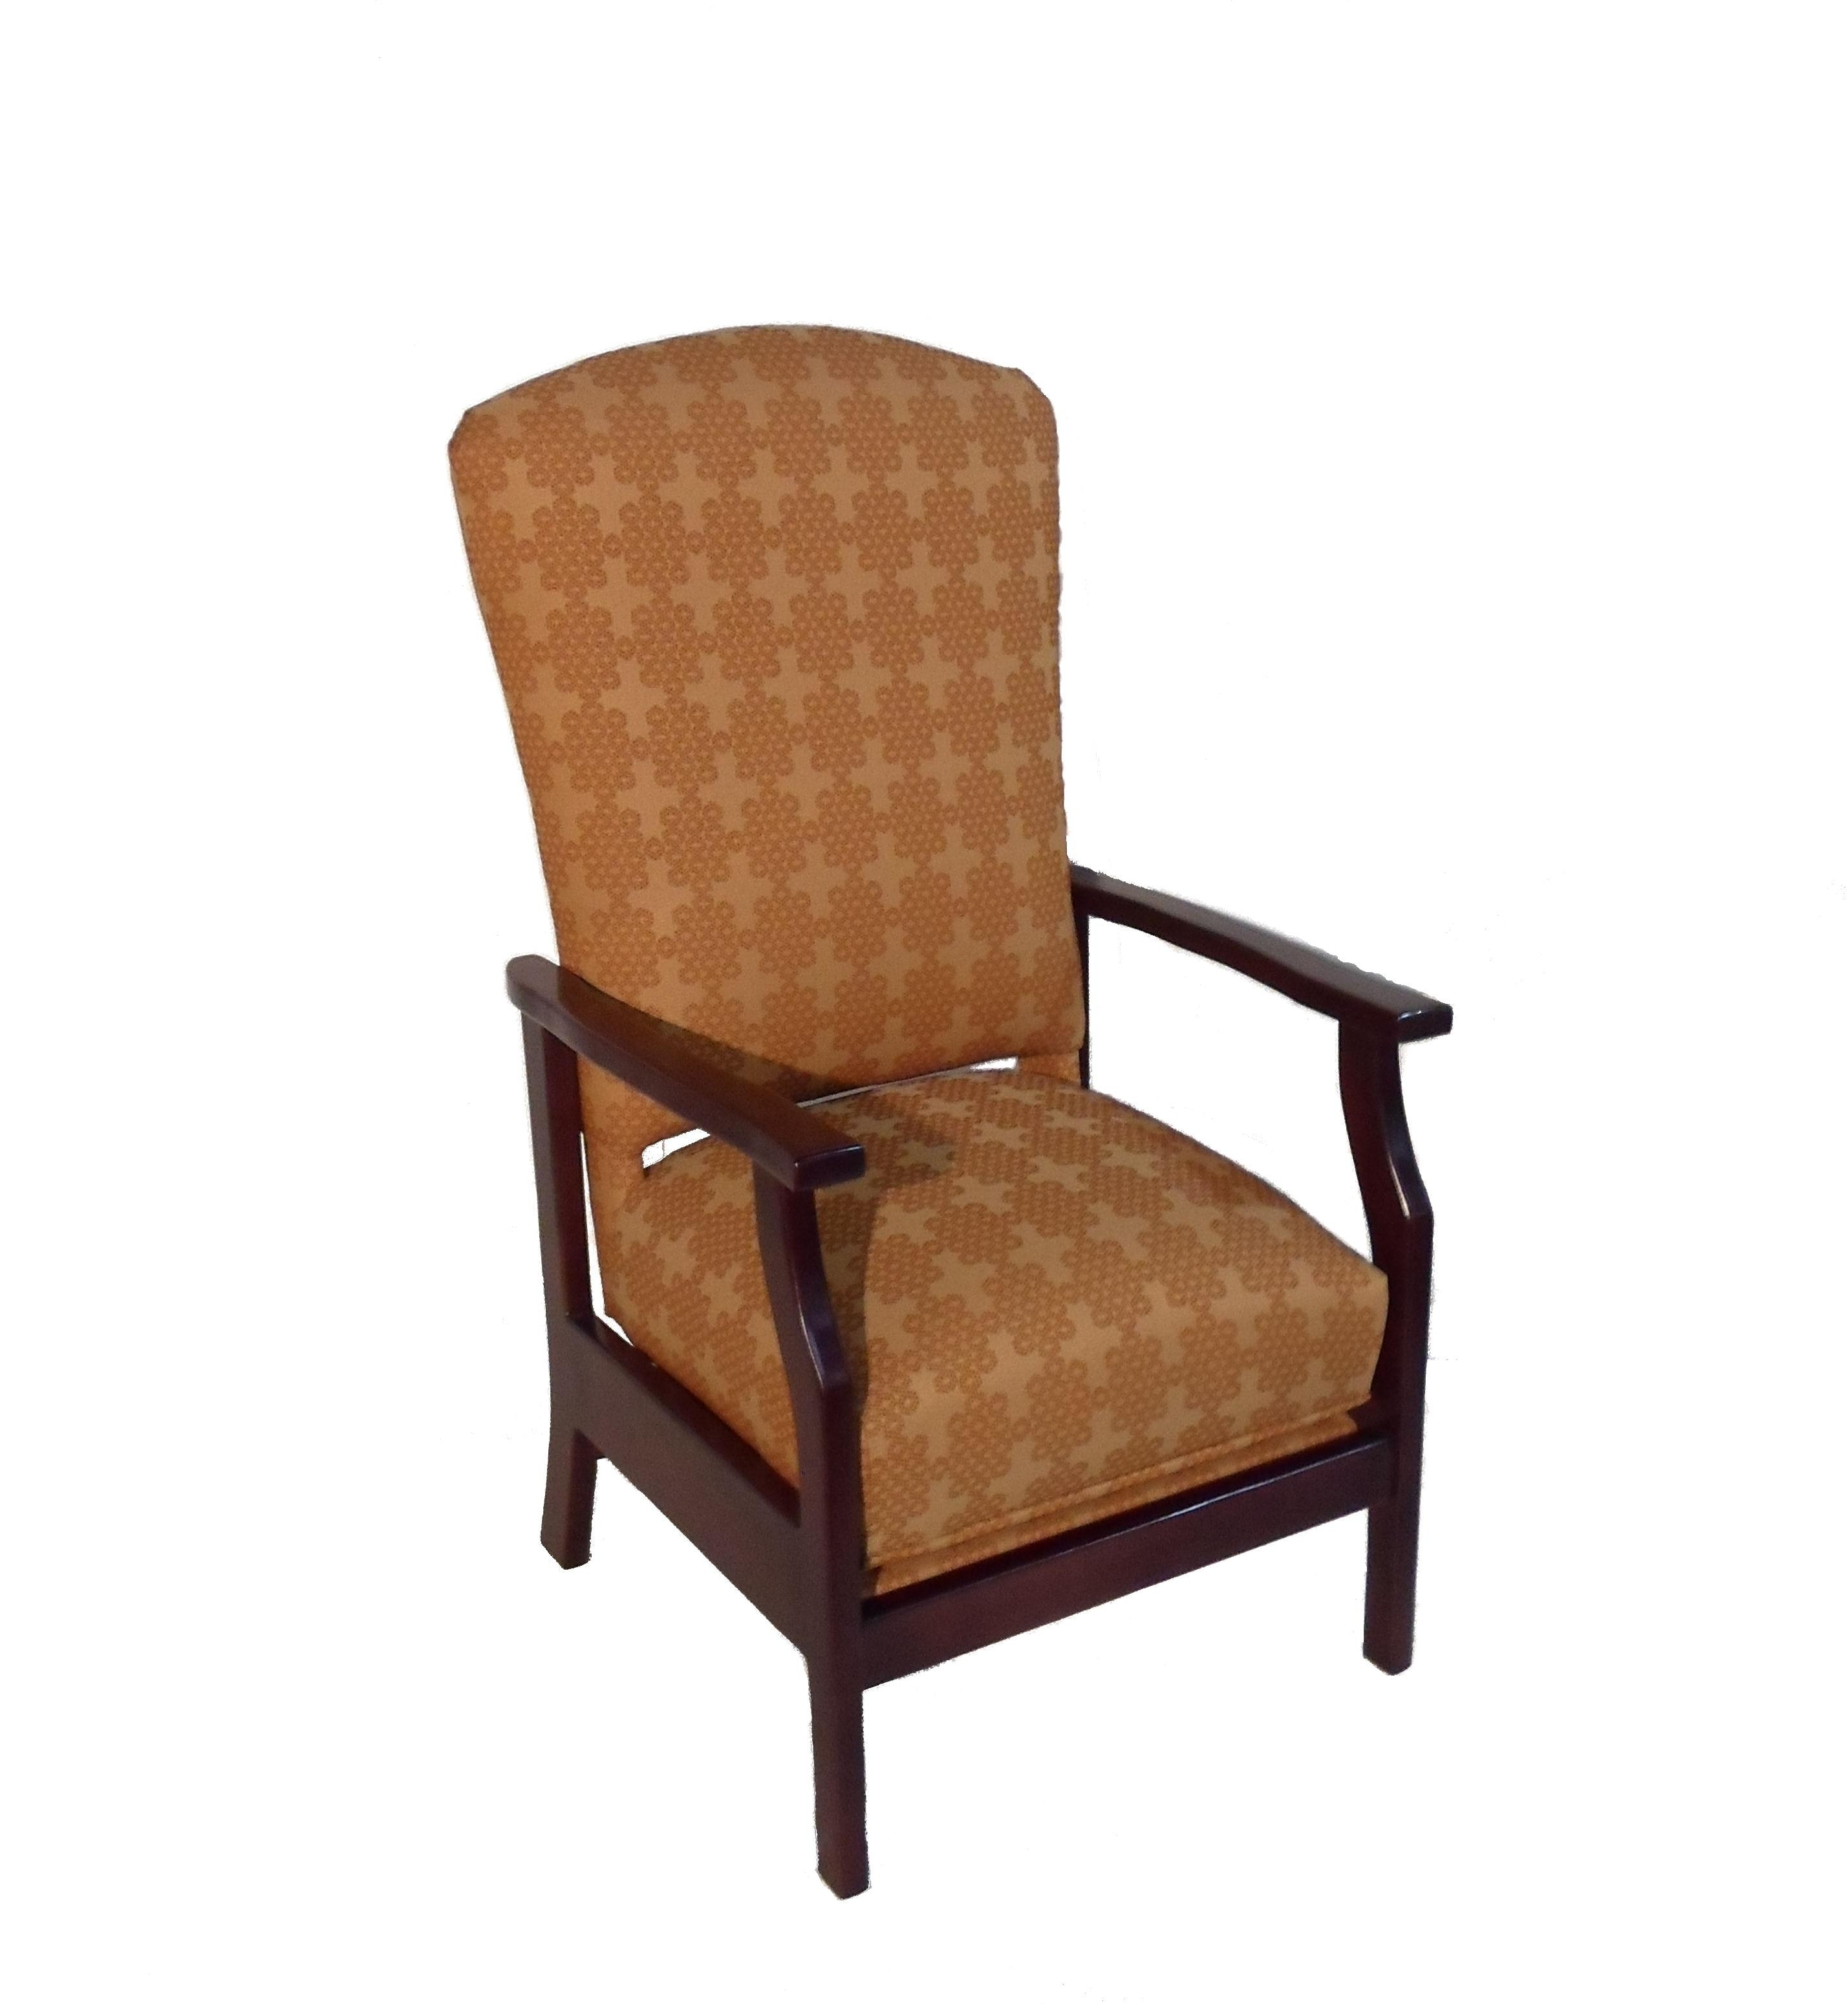 Stationary Rocking Chair With Lumbar Support – Twin Rivers Furnishings In Rocking Chairs With Lumbar Support (View 5 of 15)